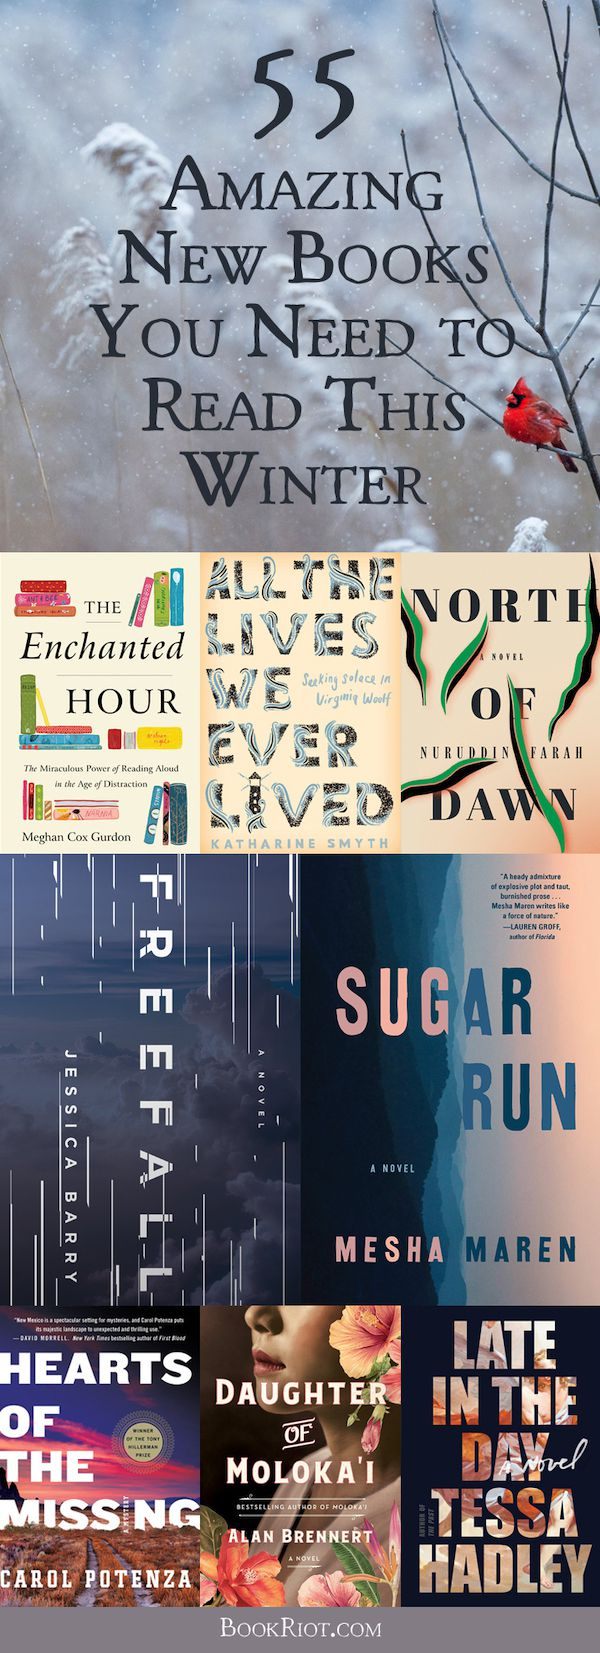 55 Amazing New Books You Need to Read This Winter